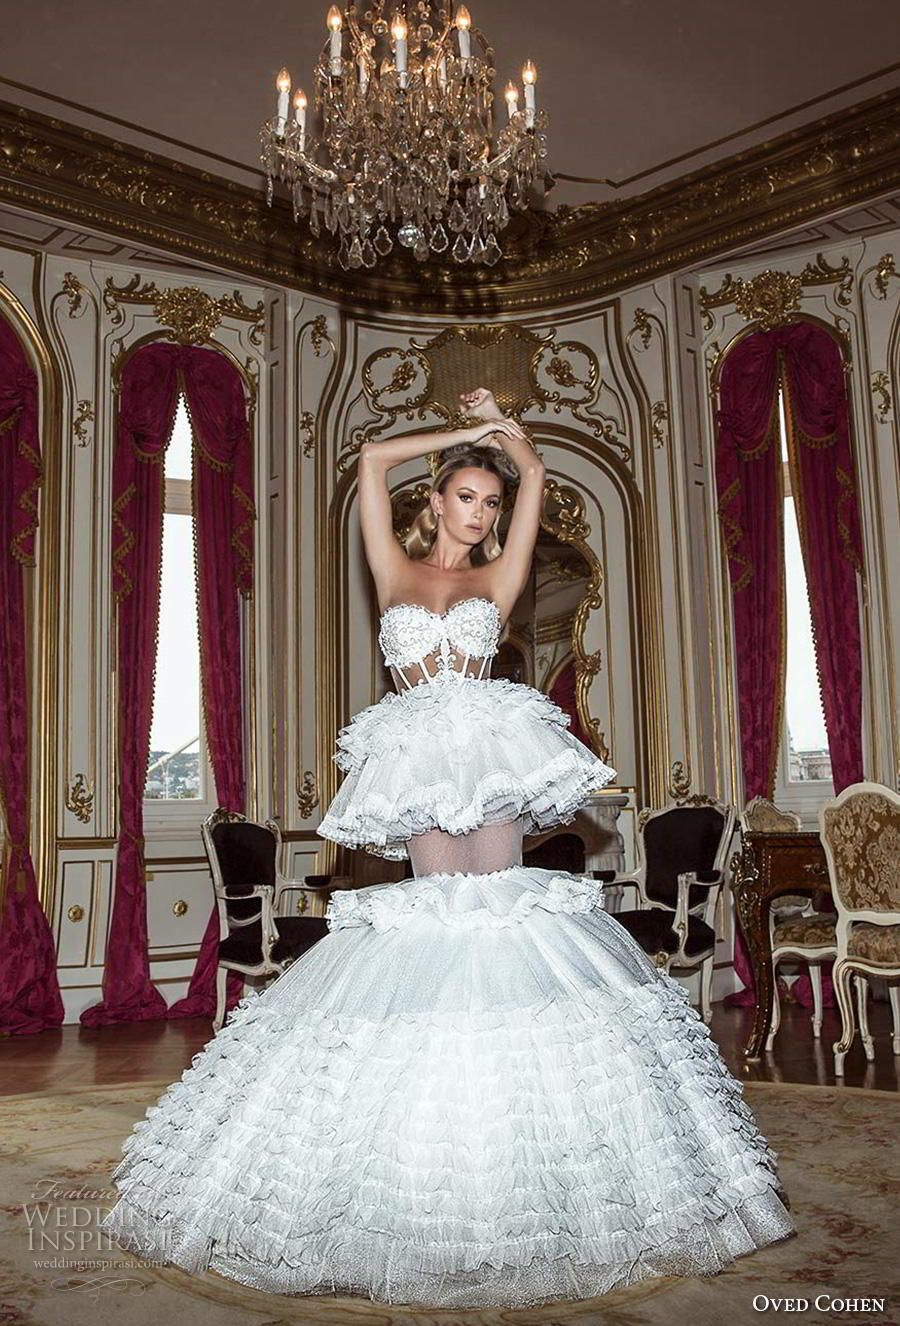 Oved cohen wedding dresses in fashion in lingerie